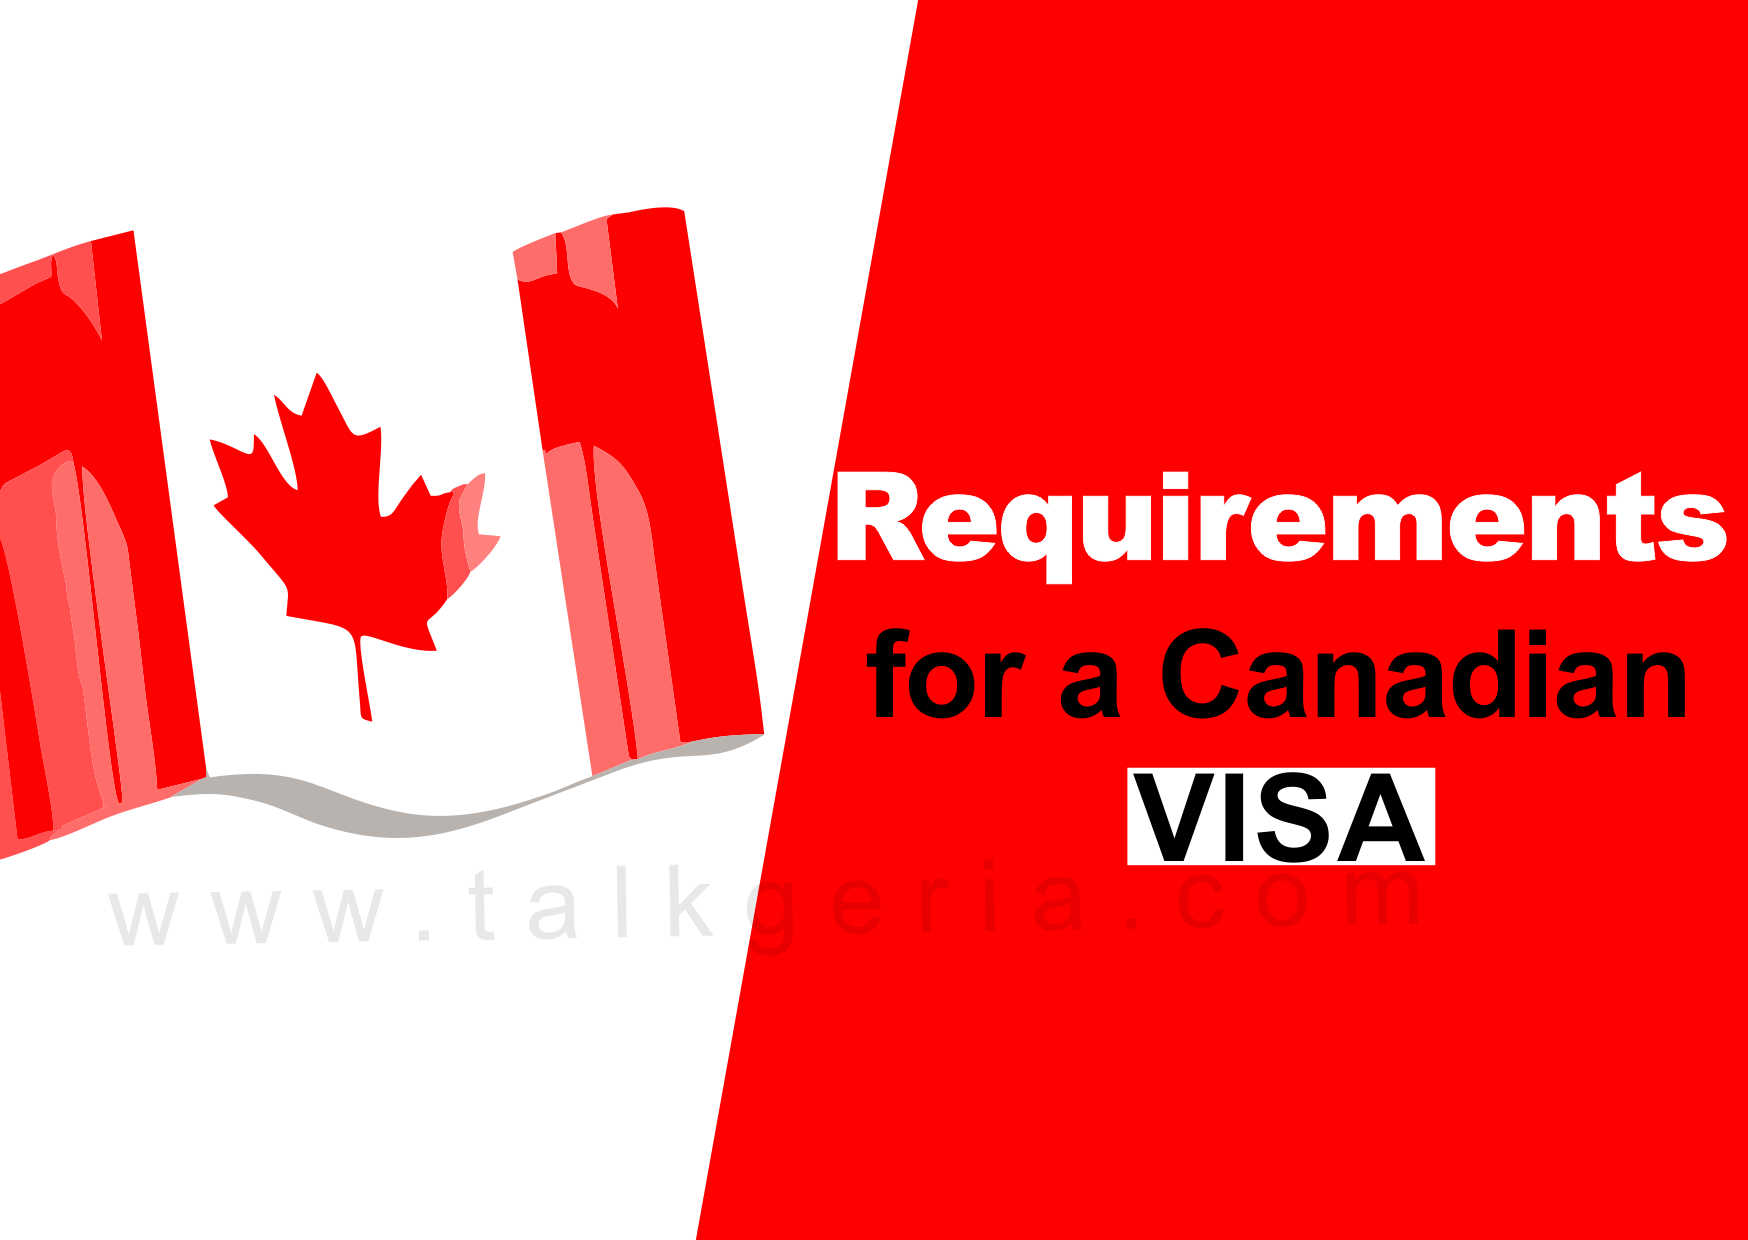 Requirements for a Canadian Visa